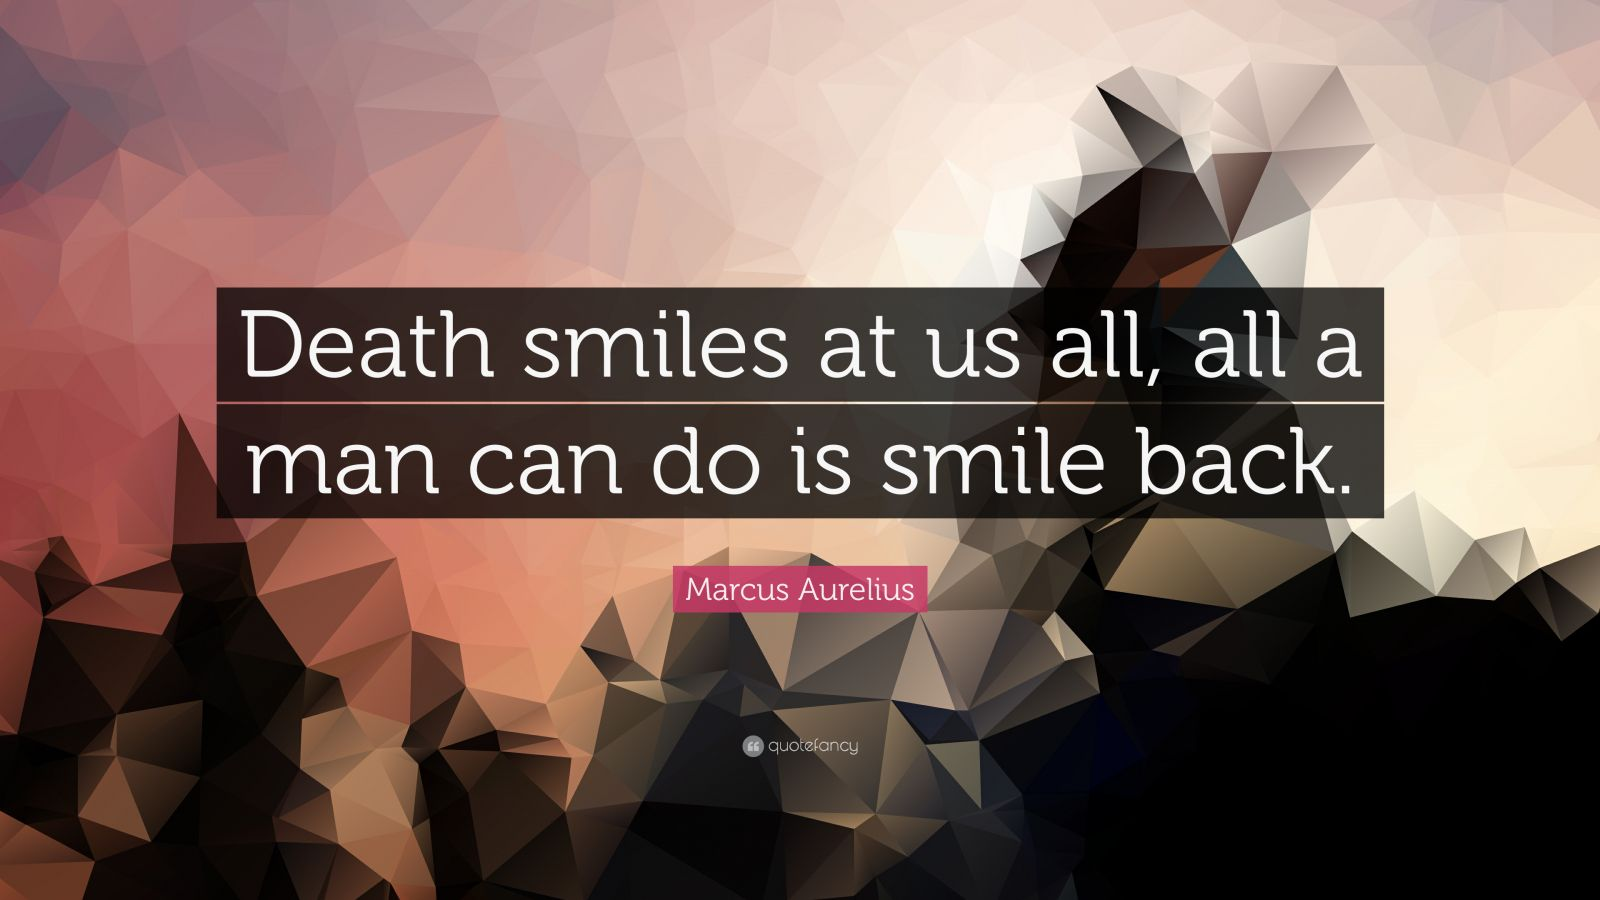 Death smiles at us all, but all a man can do is smile back.